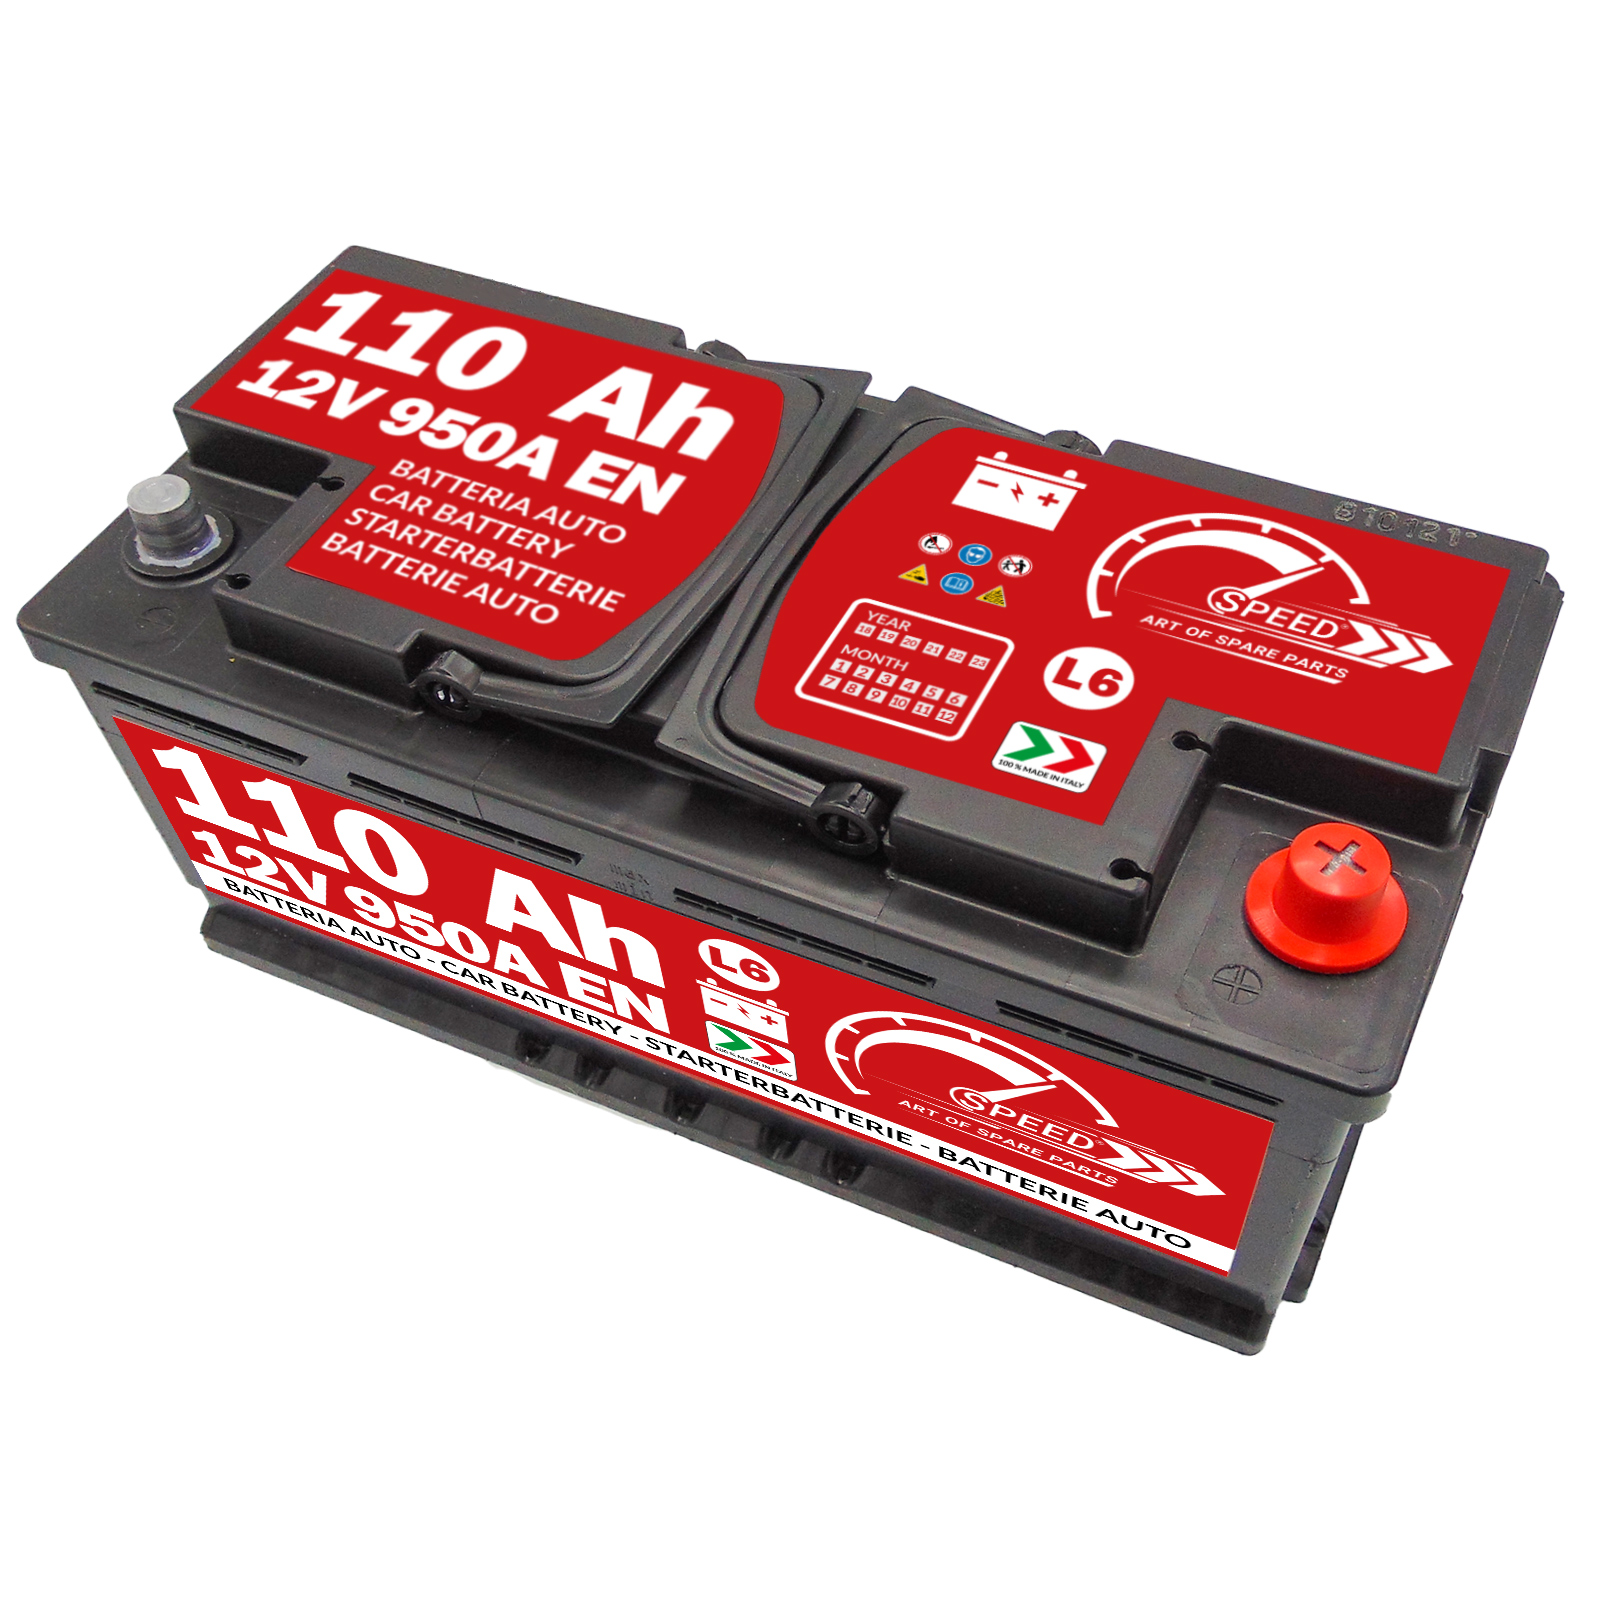 Batteria auto Speed 110Ah L6 950A 12V BMW Serie 5